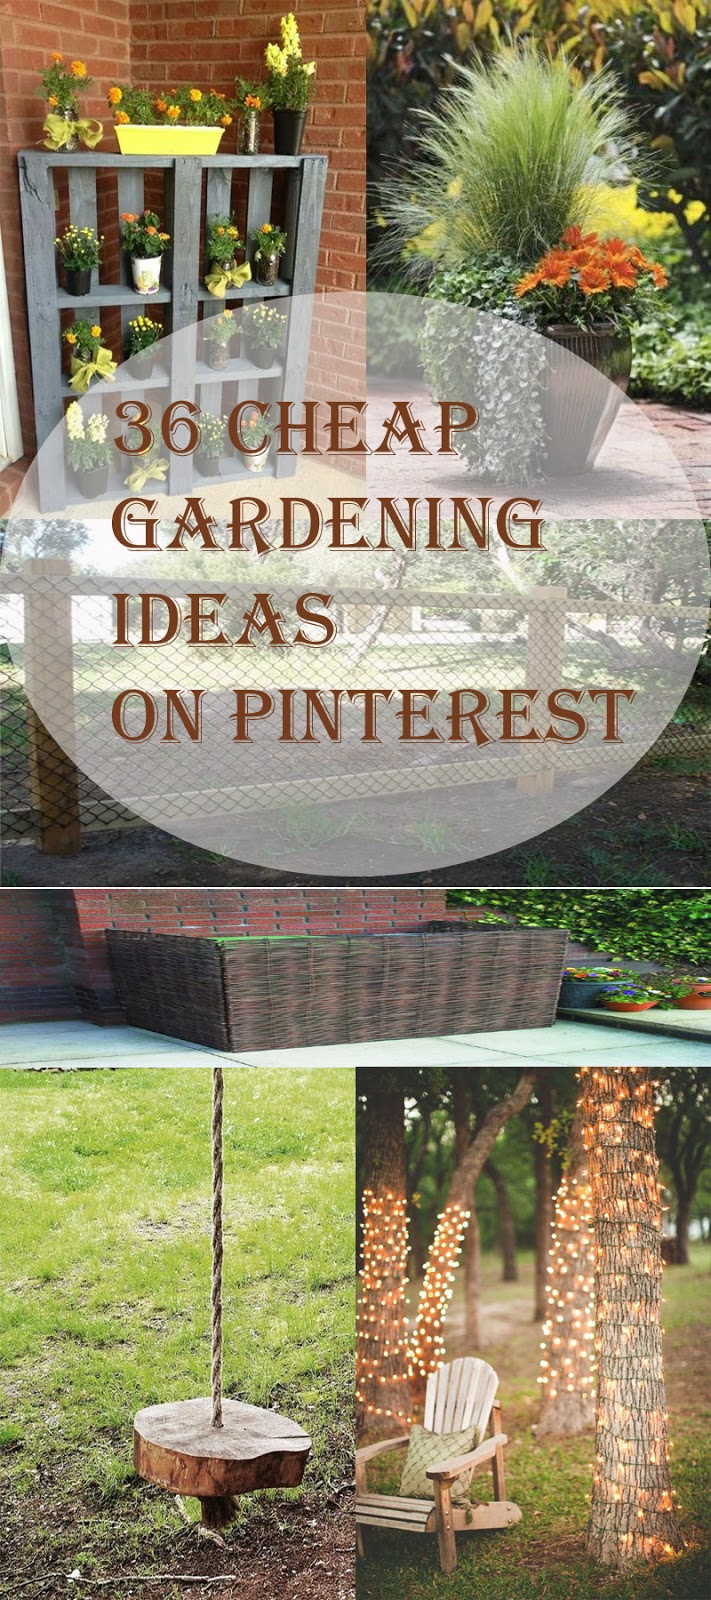 36 Cheap Gardening Ideas On Pinterest